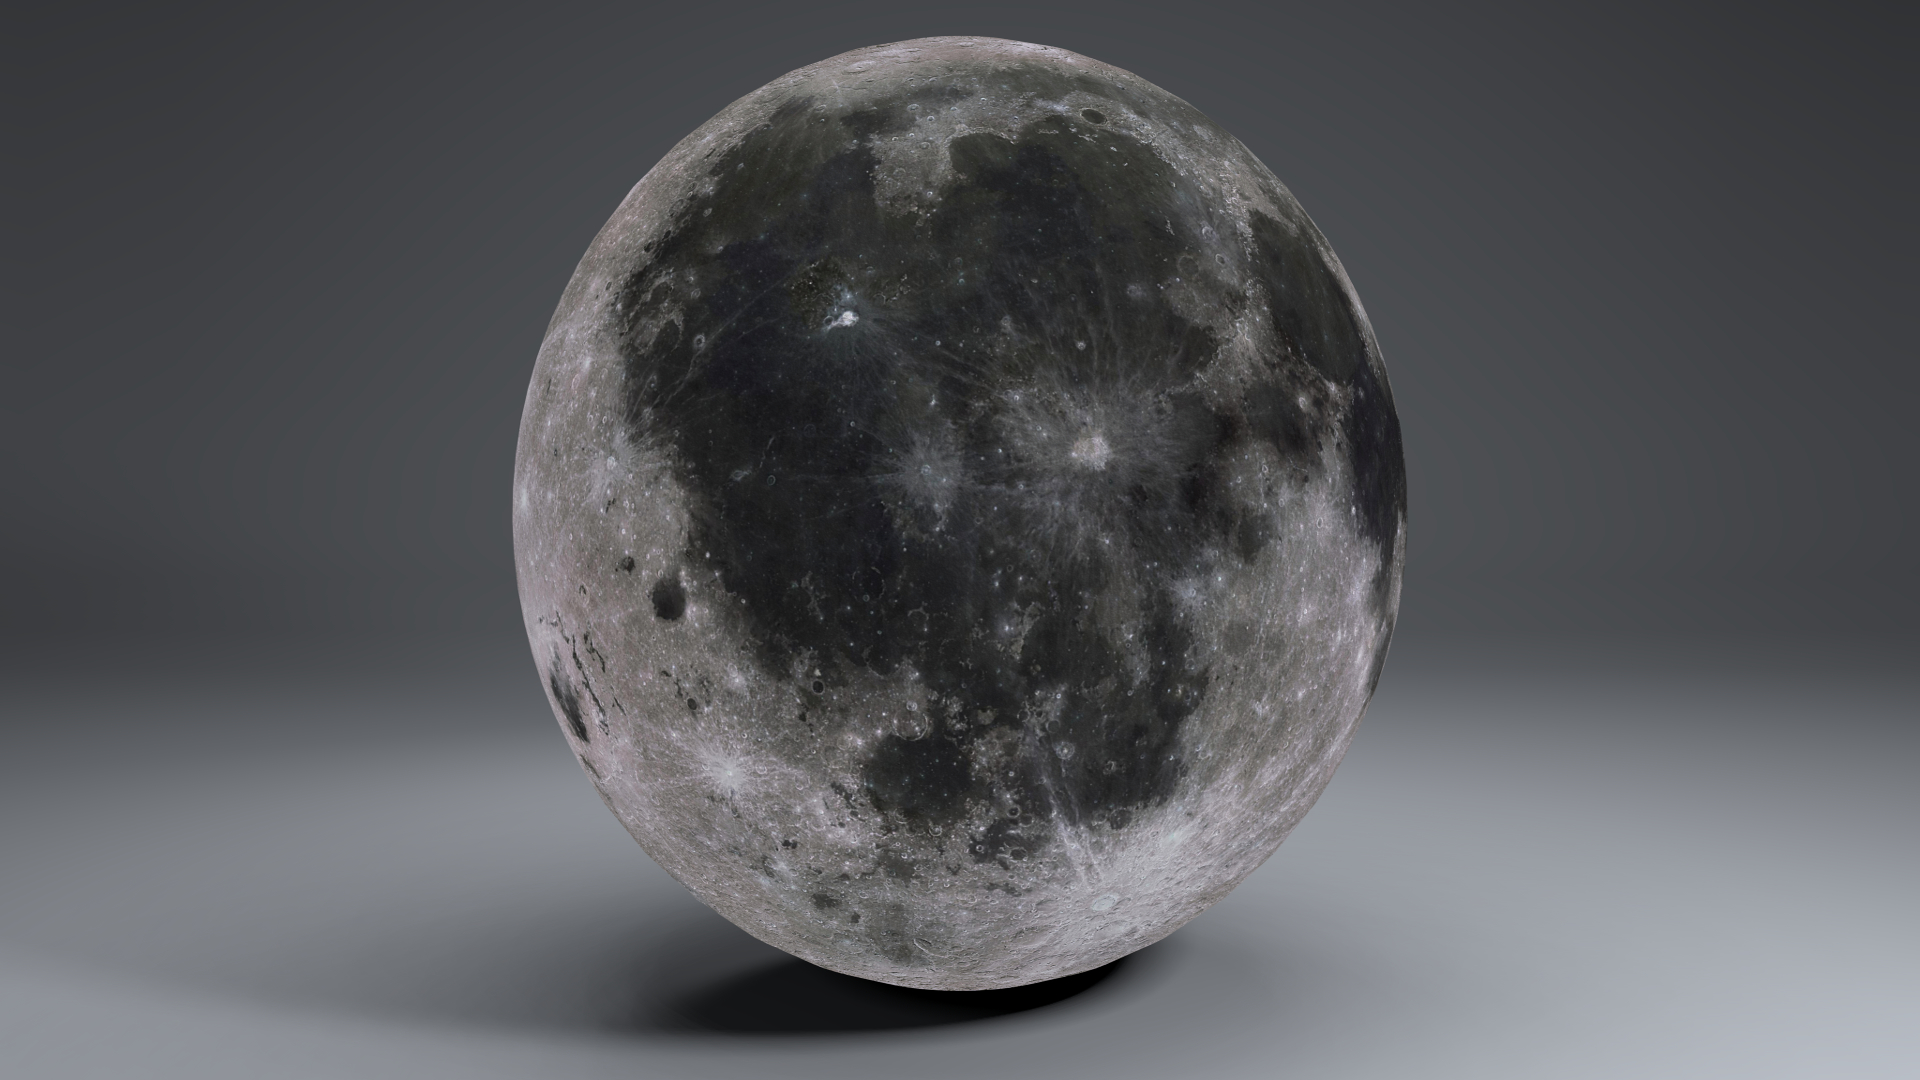 moonglobe 4k 3d model 3ds fbx blend dae obj 221754